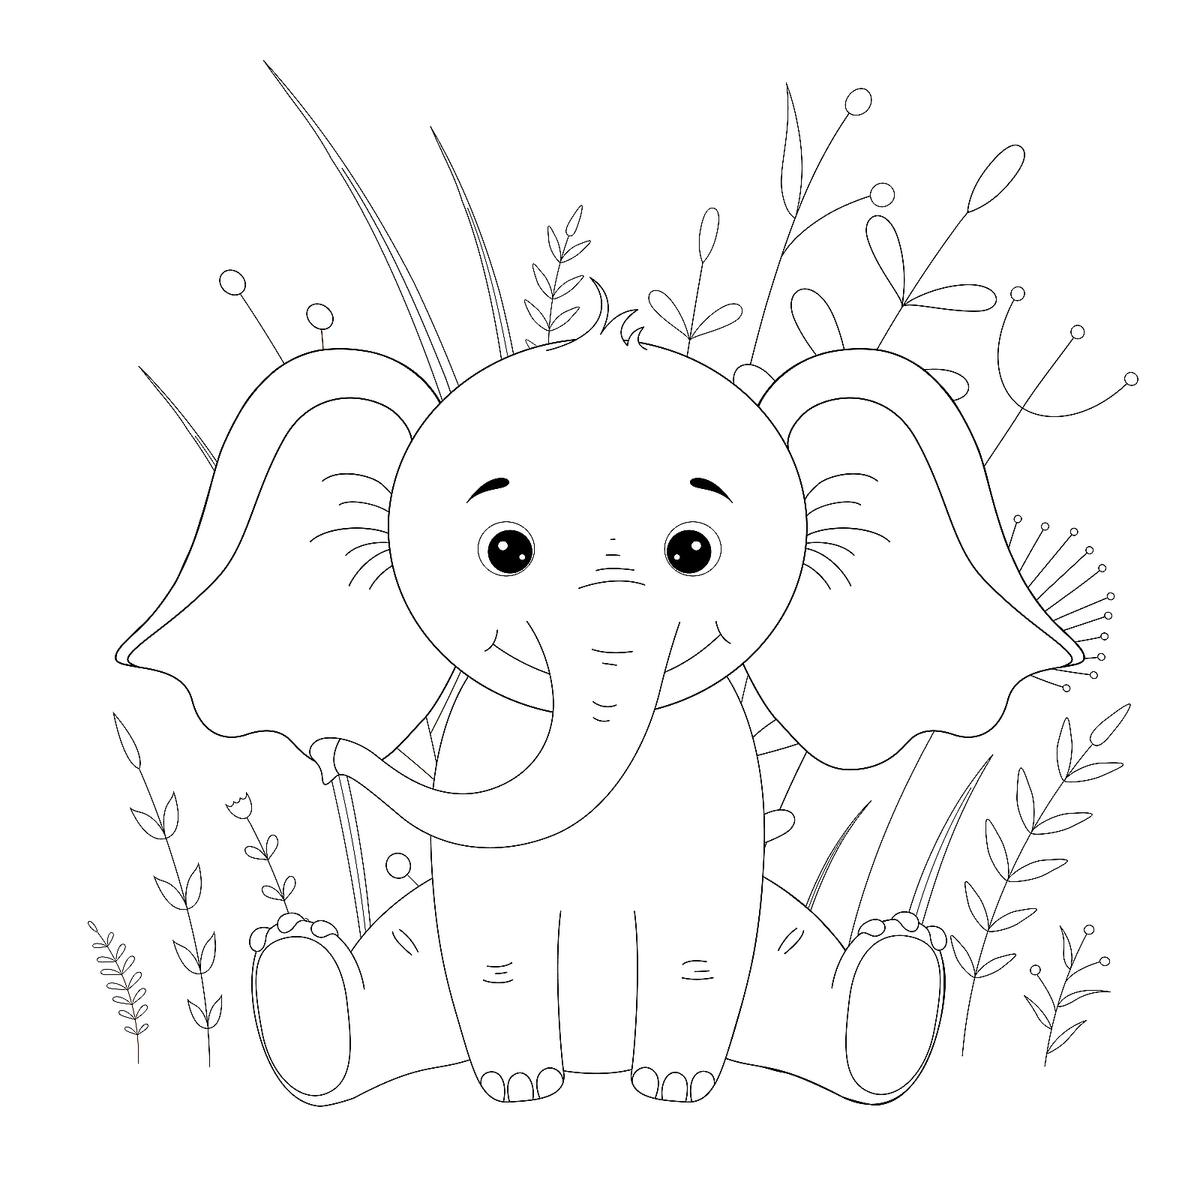 coloring pics of elephant elephant coloring pages 12 free fun printable elephant elephant of pics coloring